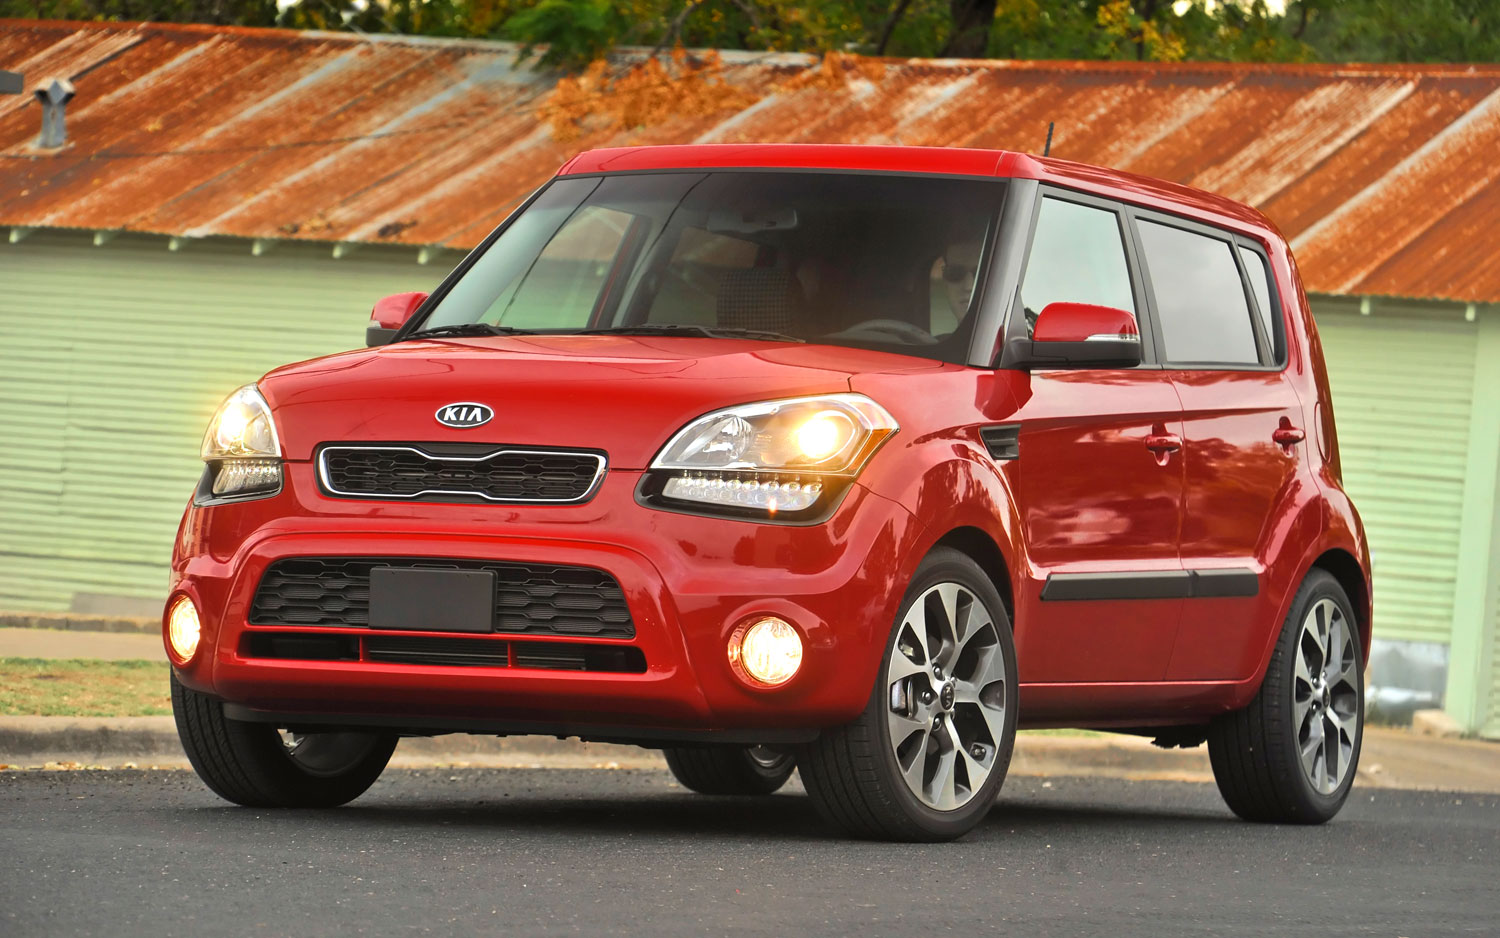 2013 Kia Soul Front Three Quarter View1